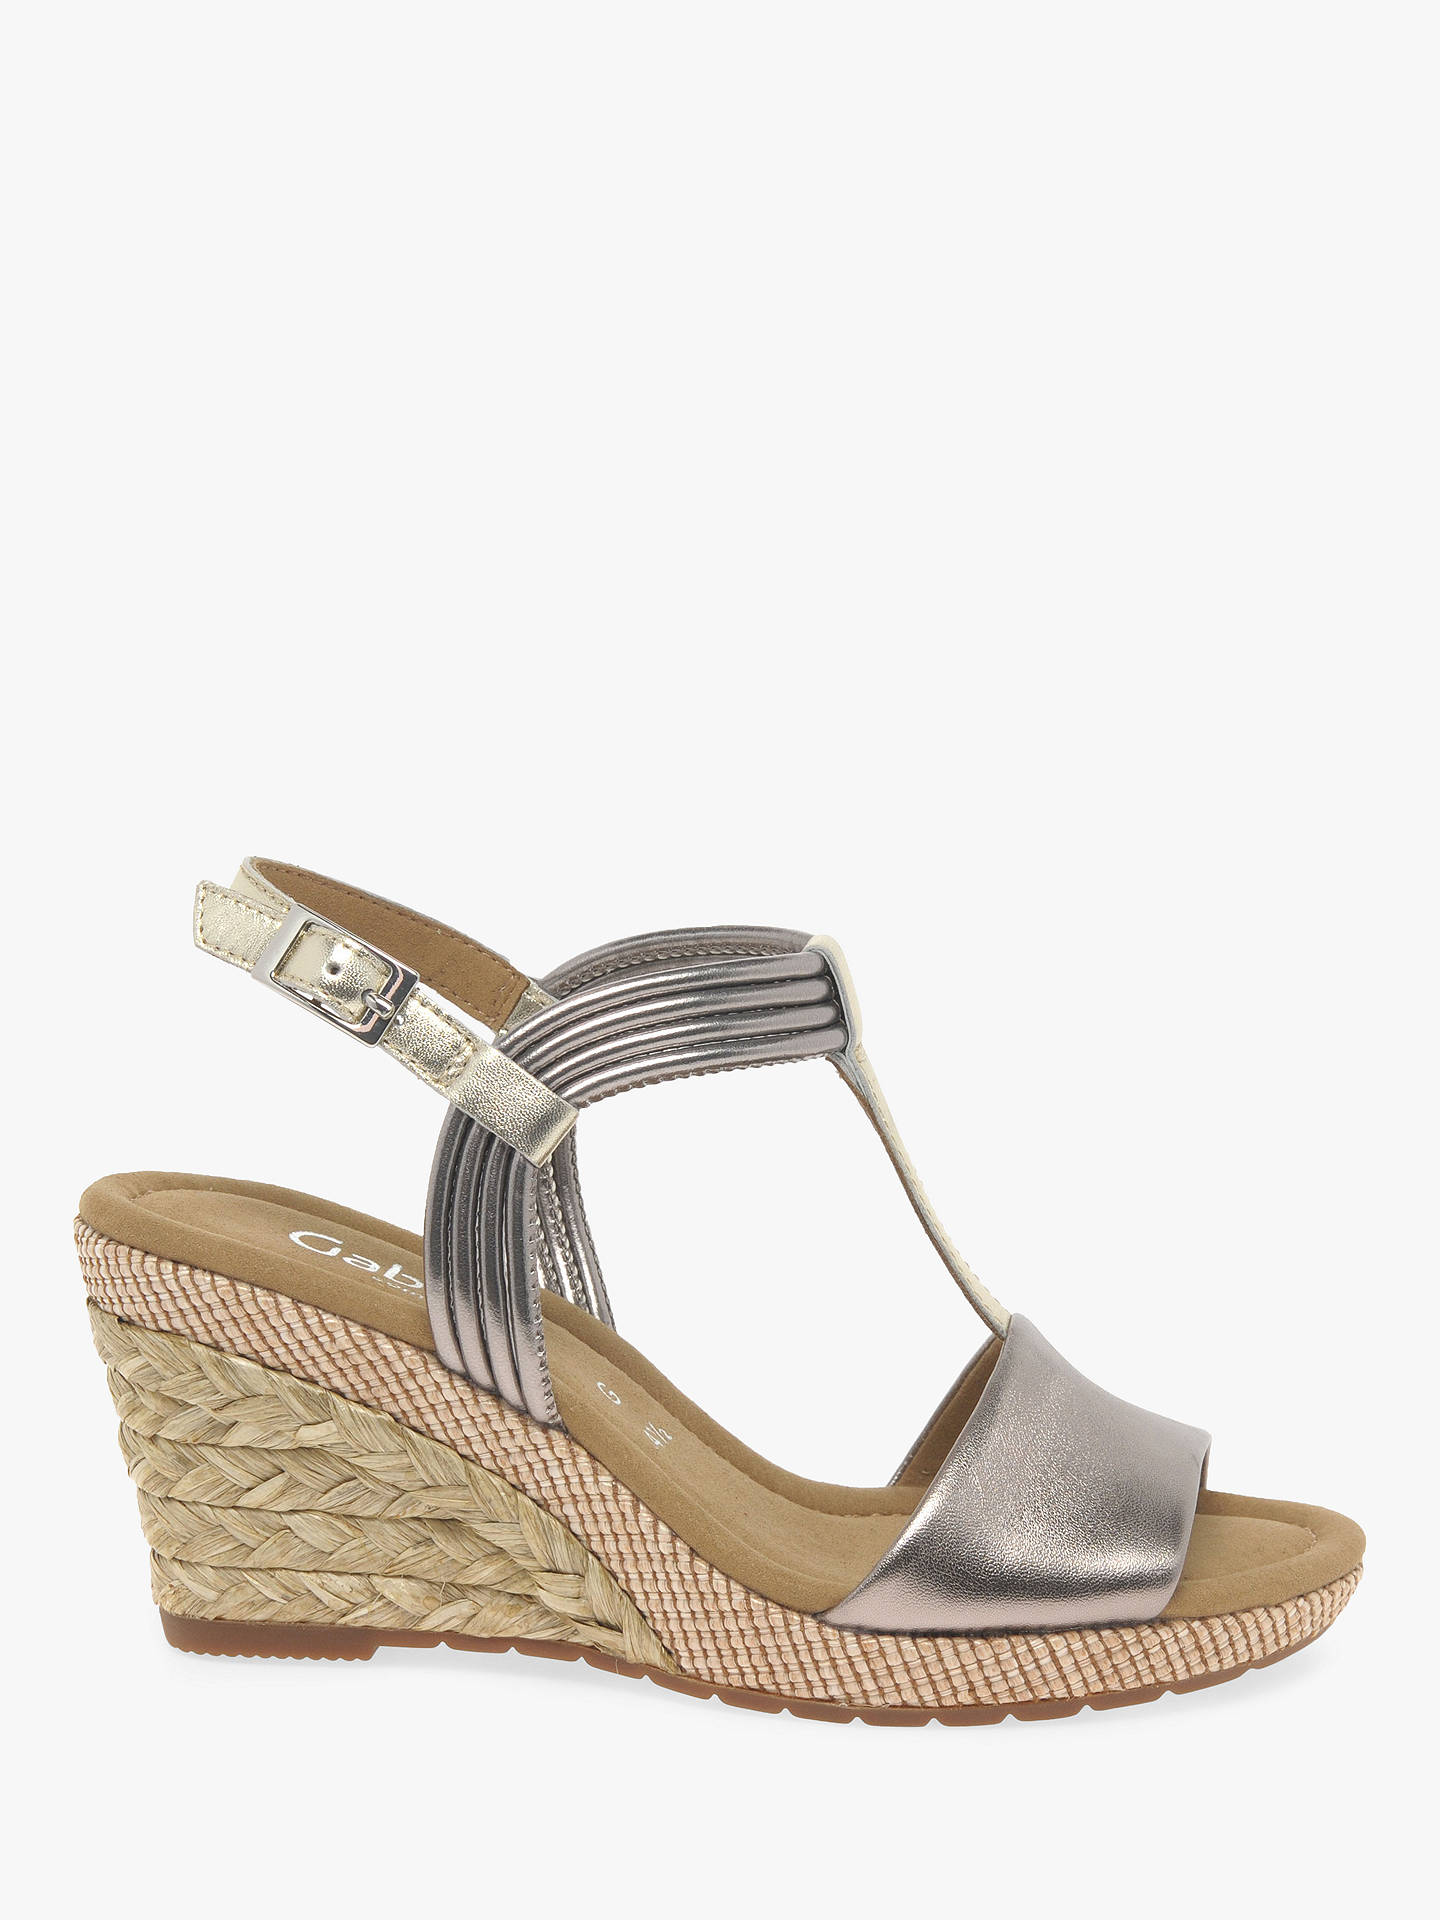 c52d62043b4 Buy Gabor Jess Wide Fit Wedge Sandals